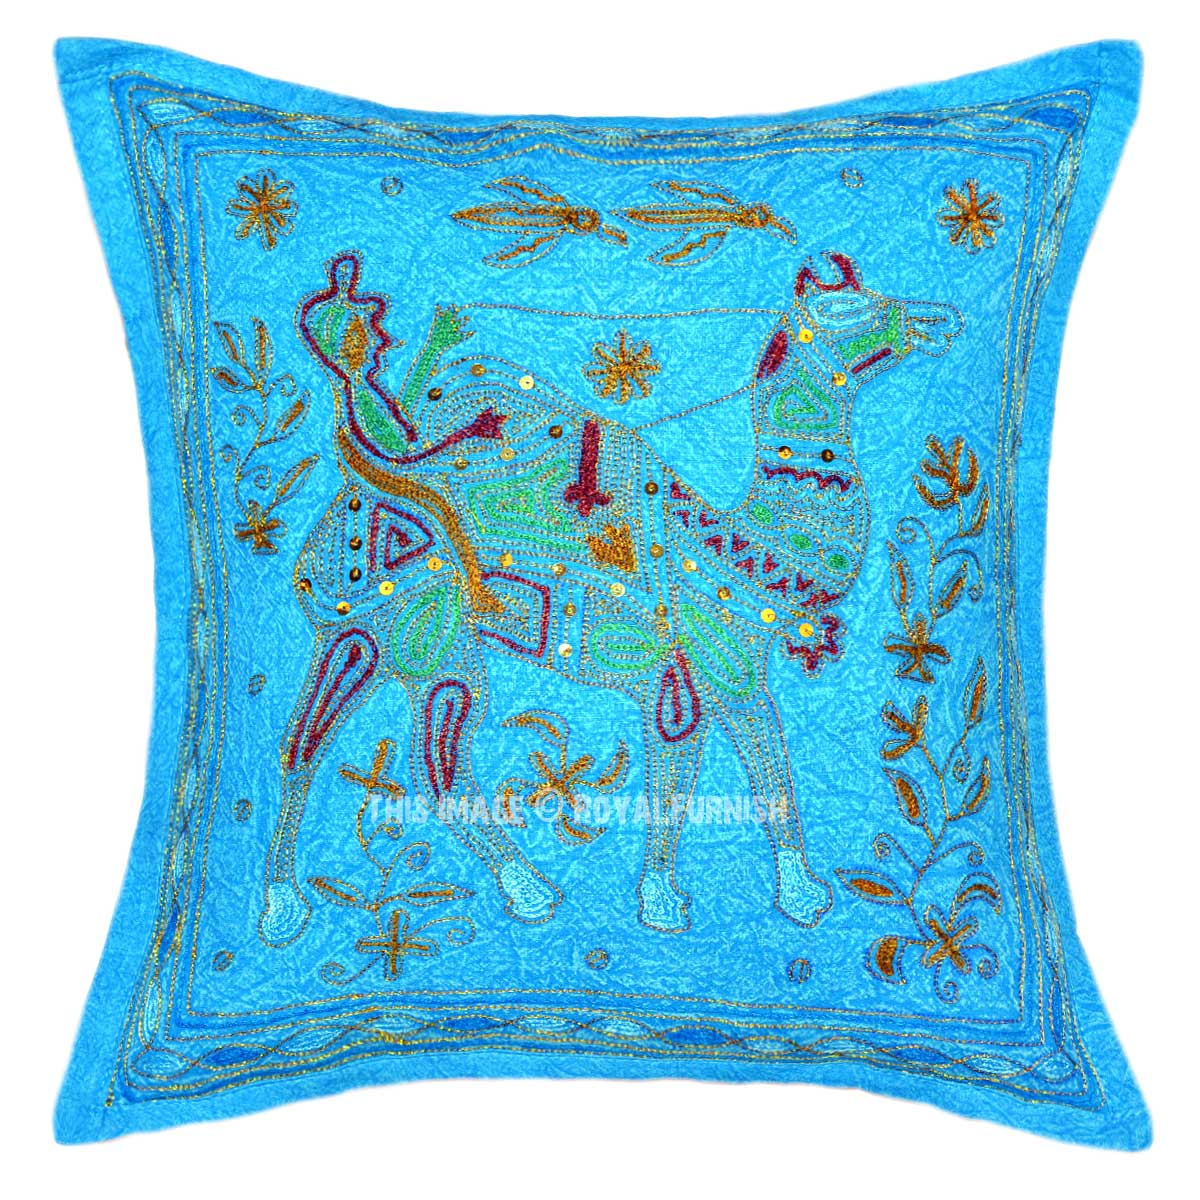 Embroidered Throw Pillow Covers : Turquoise Camel Riding Hand Embroidered Accent Throw Pillow Cover - RoyalFurnish.com